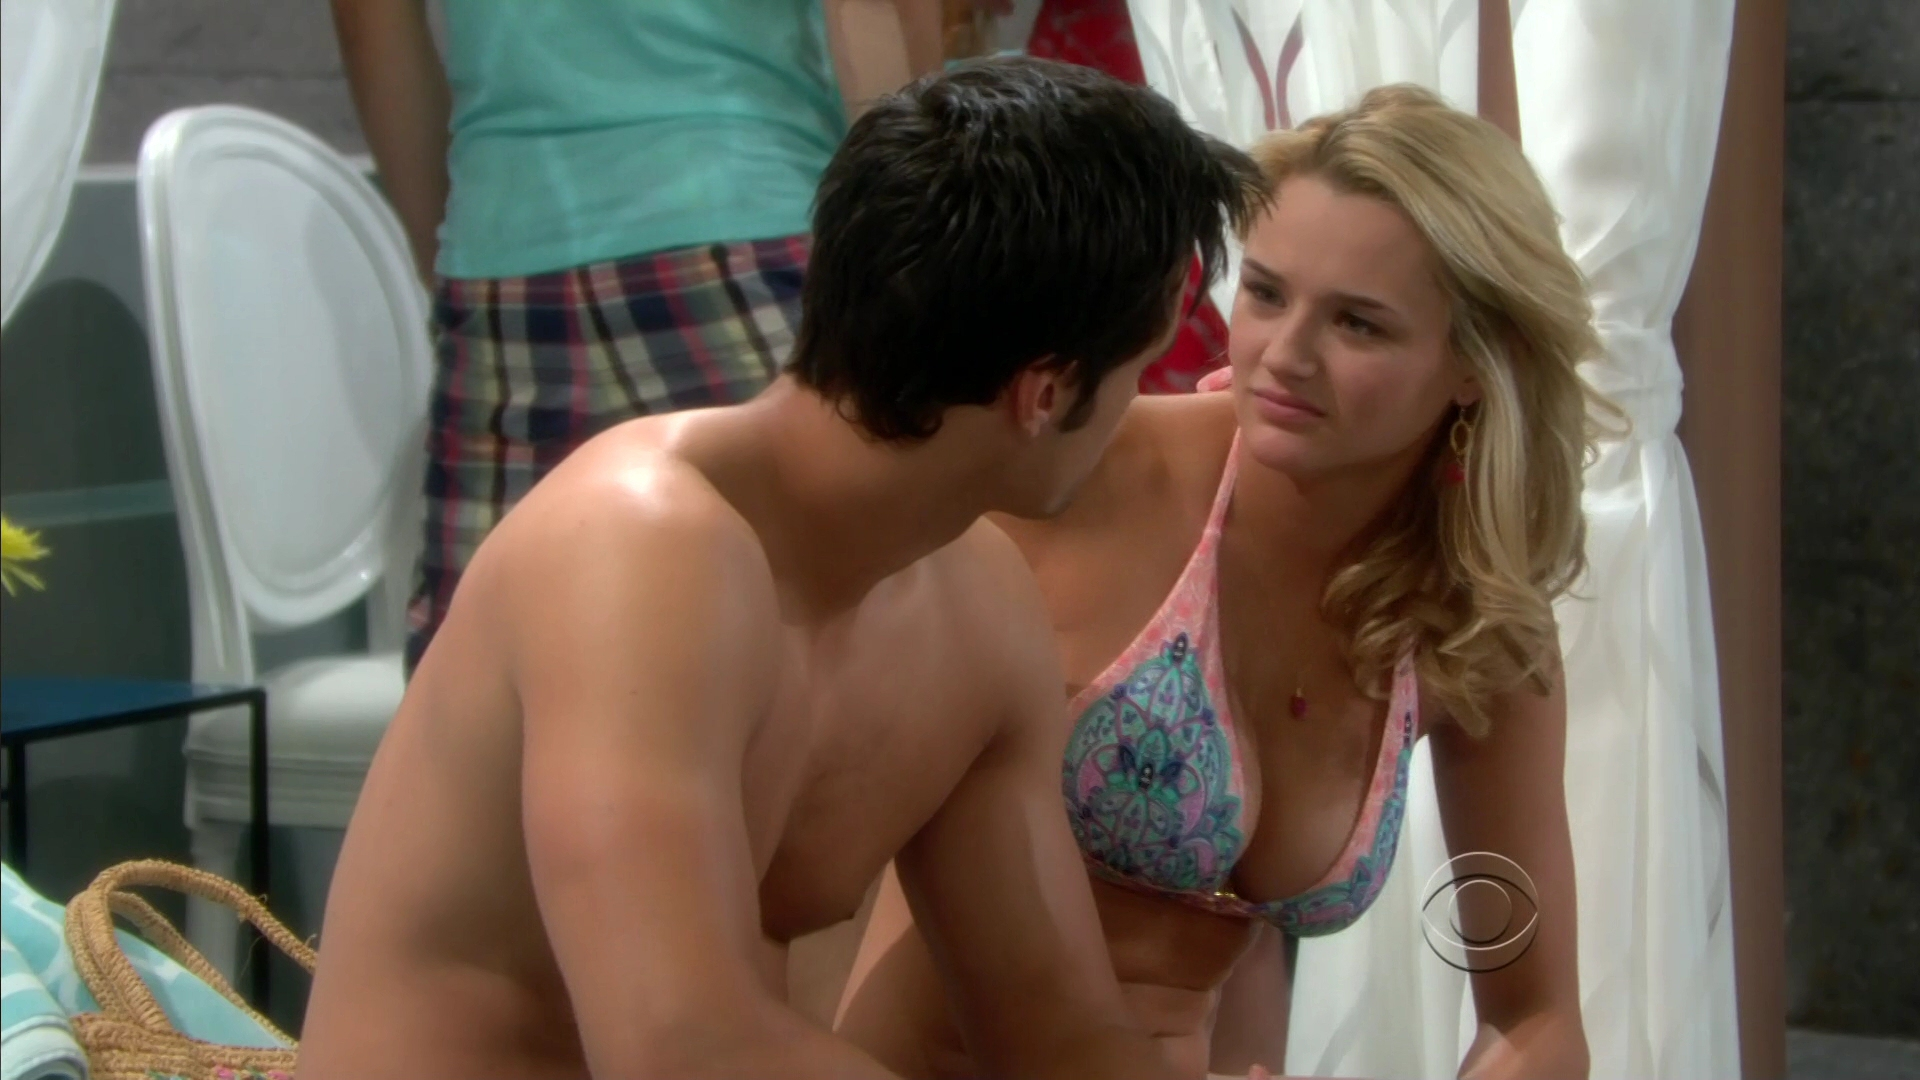 Erotica Hunter King nudes (23 foto and video), Pussy, Fappening, Boobs, swimsuit 2006